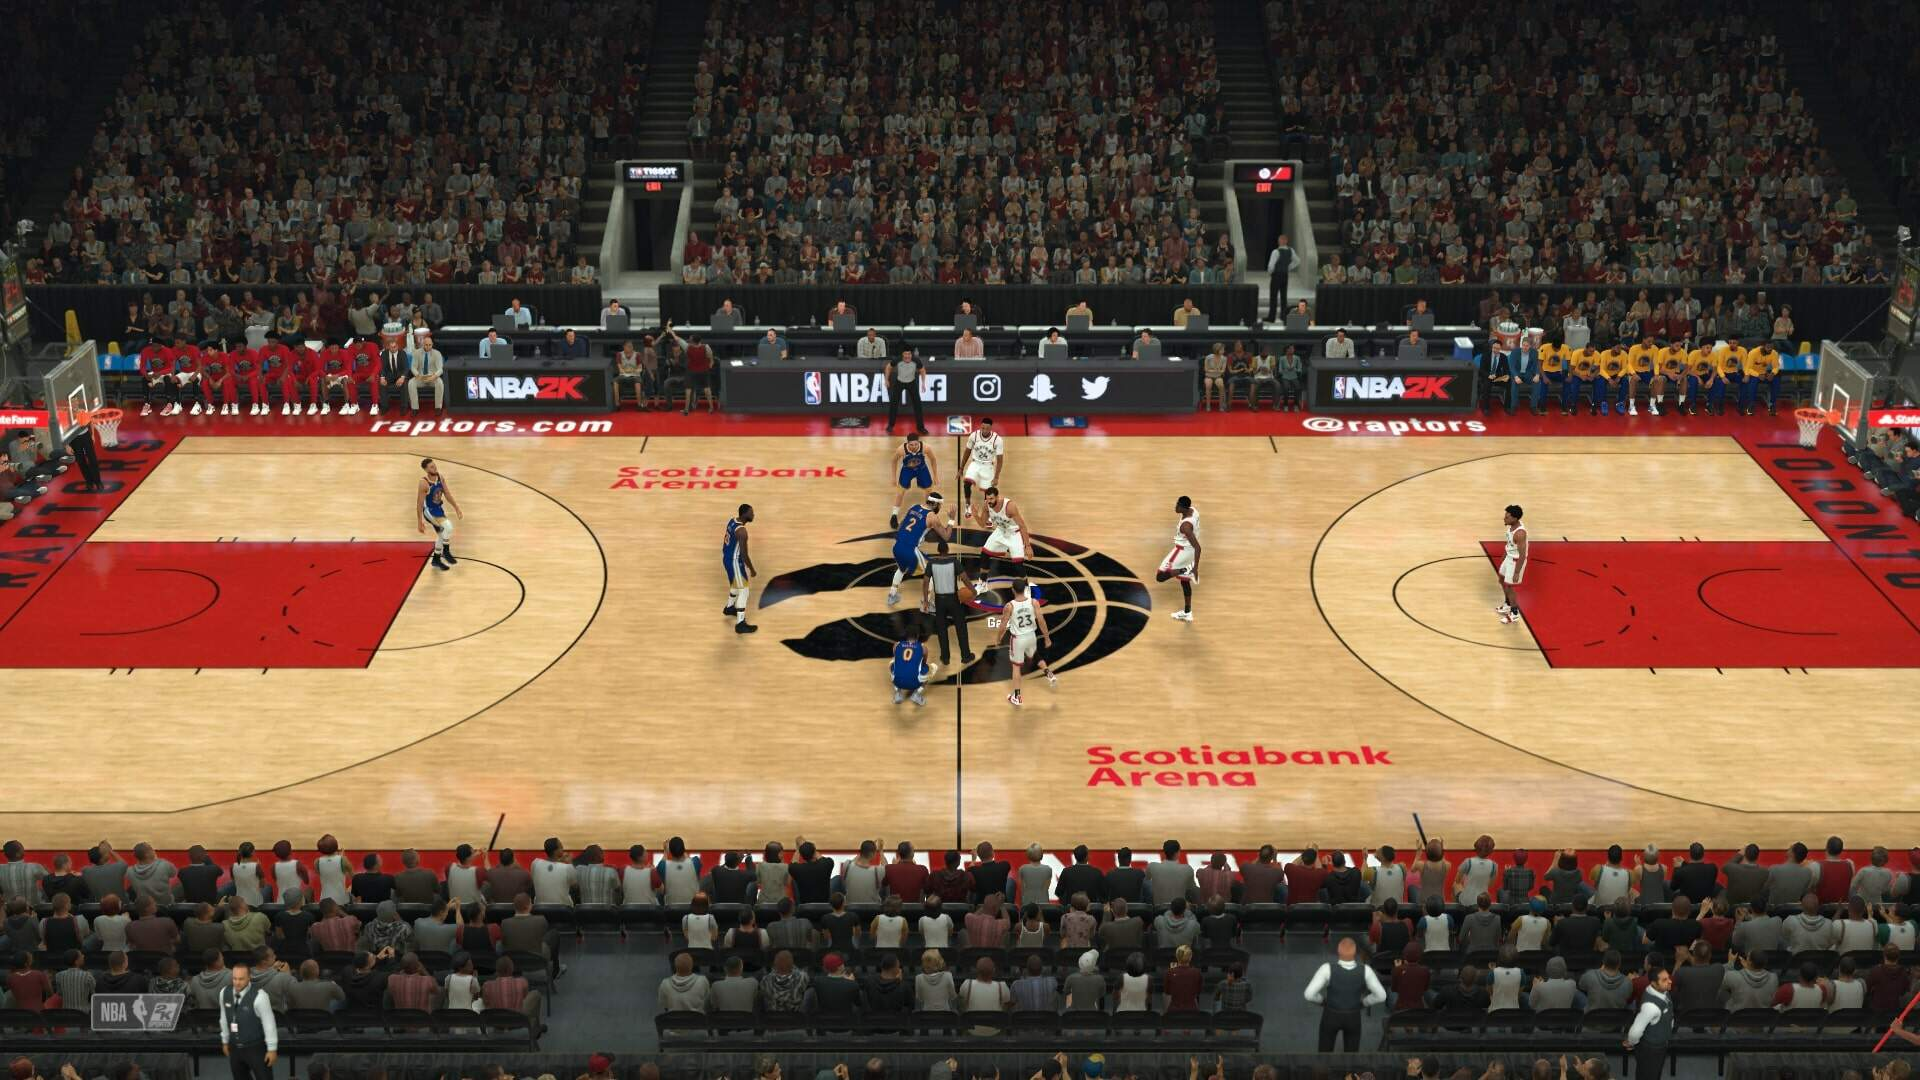 NBA 2K20 MyCareer Tips, How to Get Drafted, Story Mode Guide